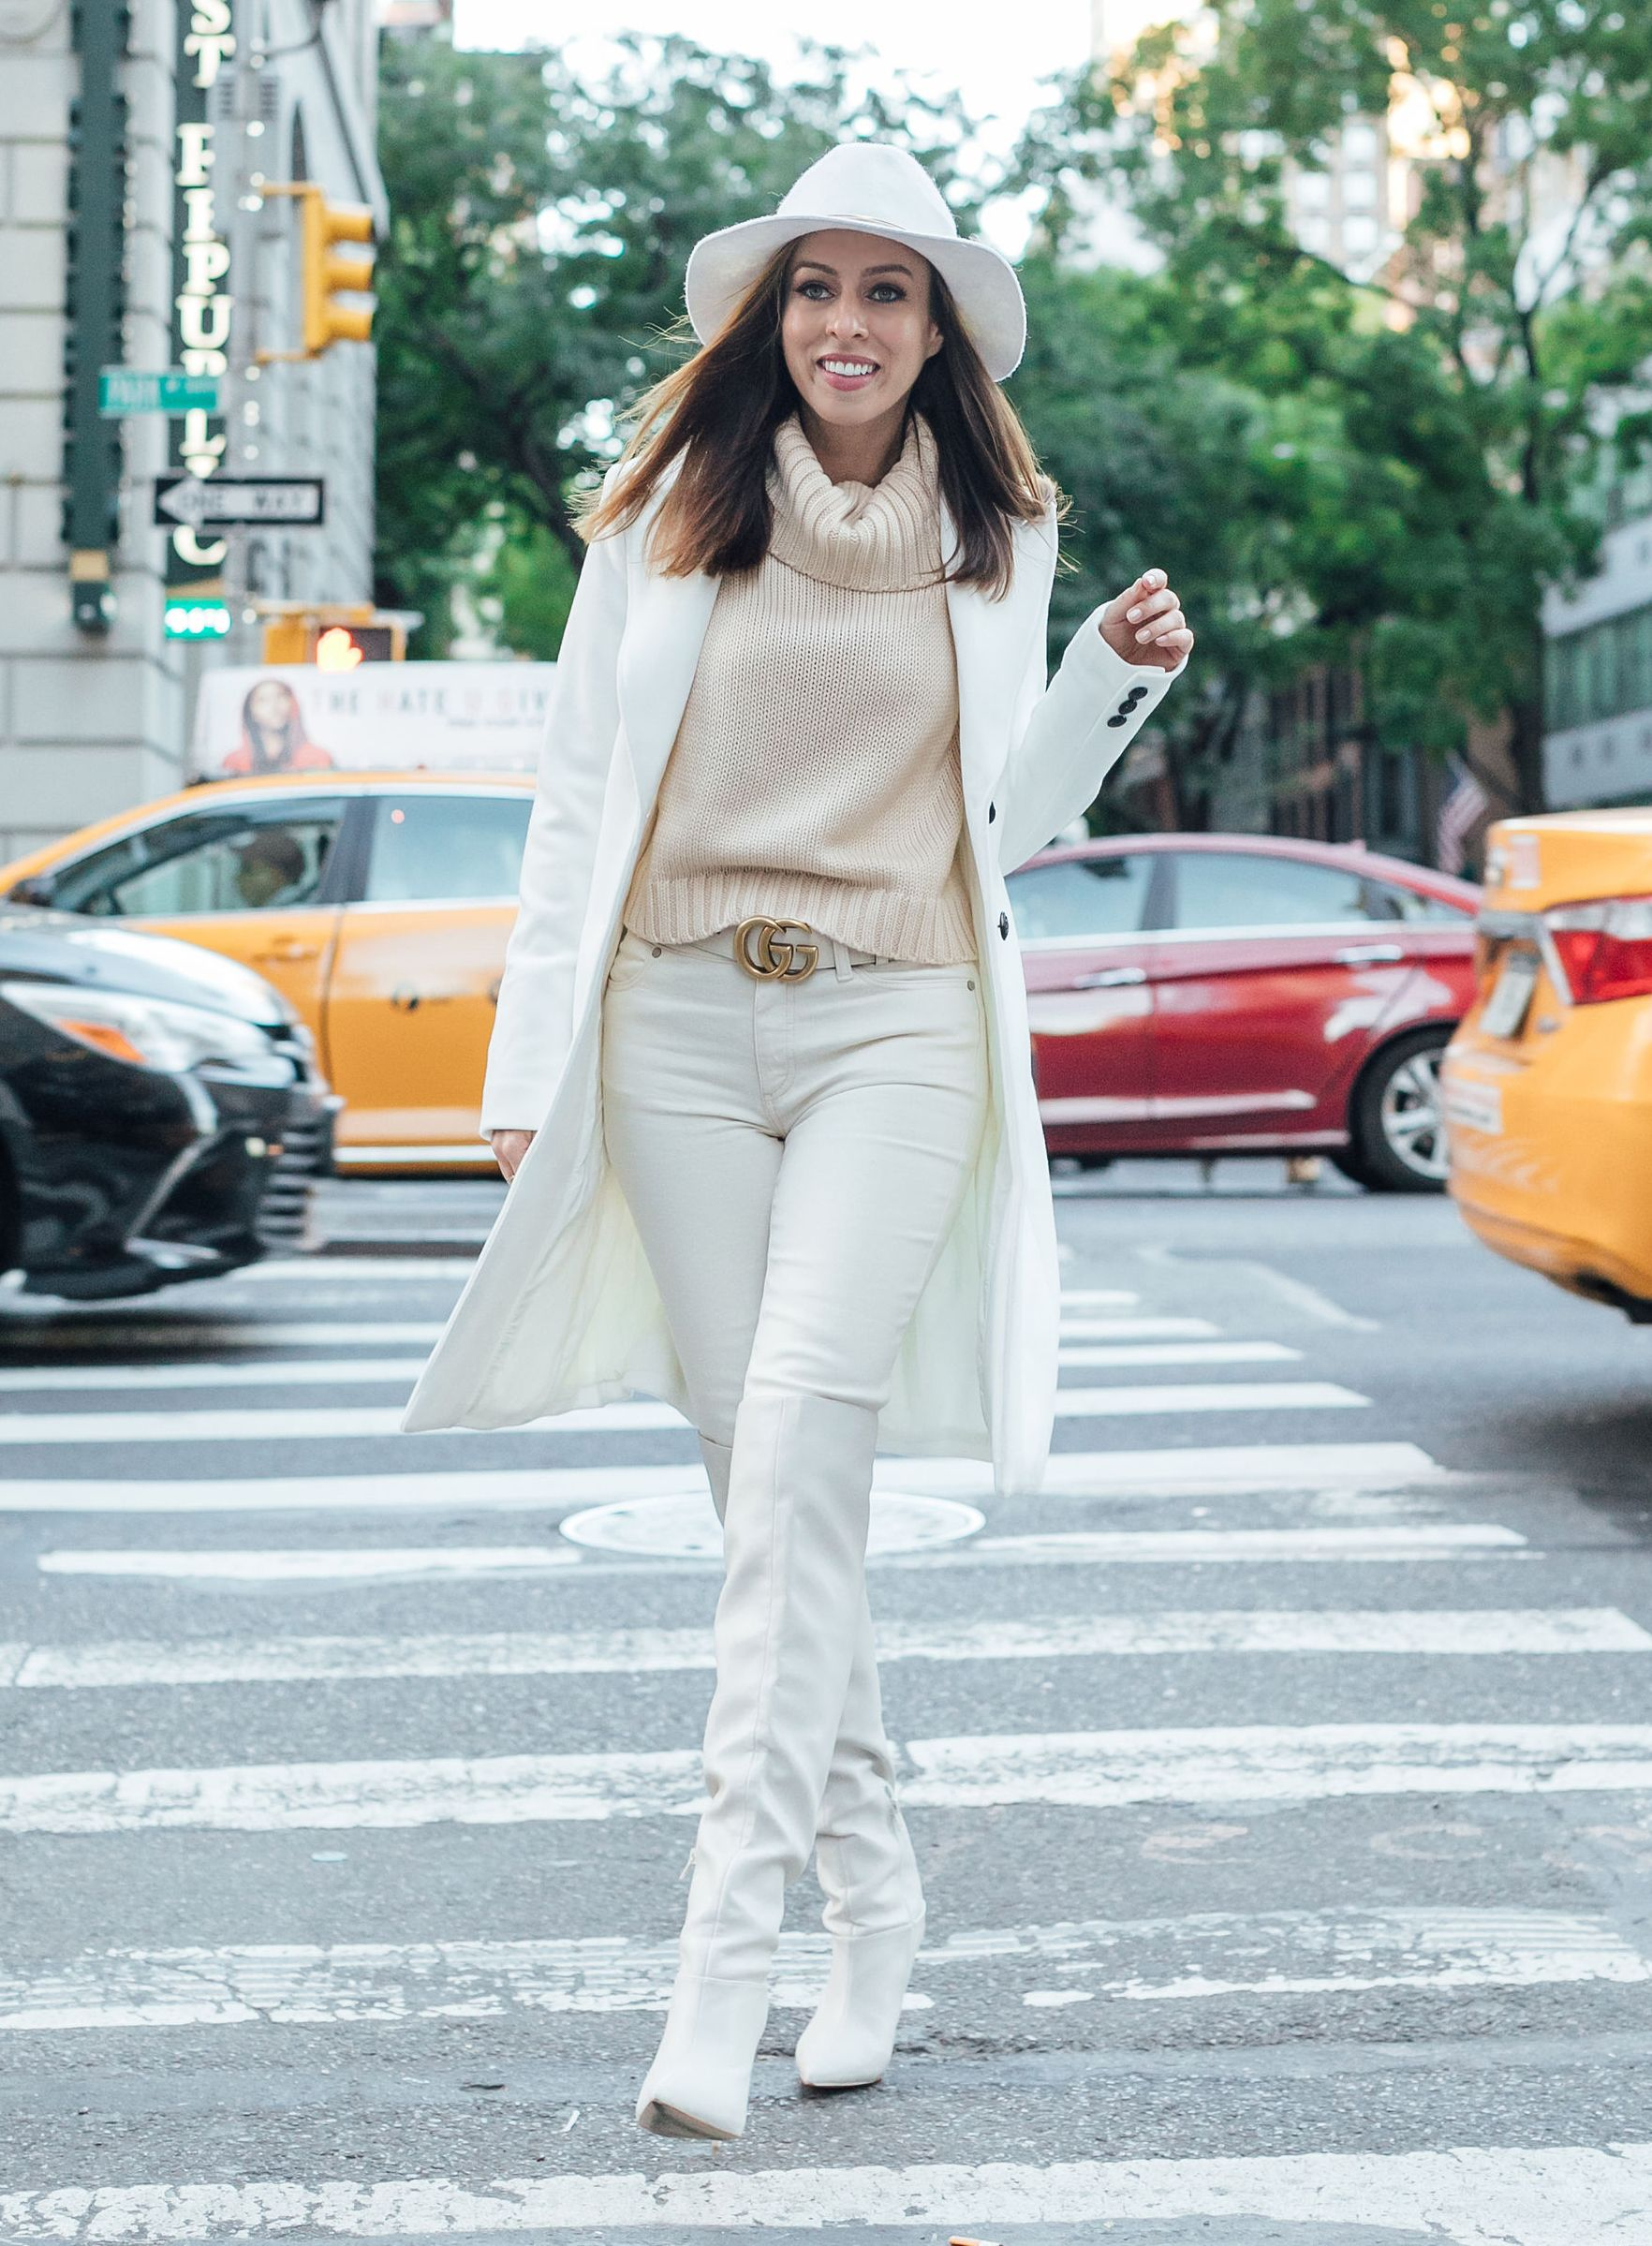 21fbecef5e4 Sydne Style shows how to wear winter white in white coat and jeans in new  york city  coats  white  boots  overthekneeboots  guccibelt  sydnesummer